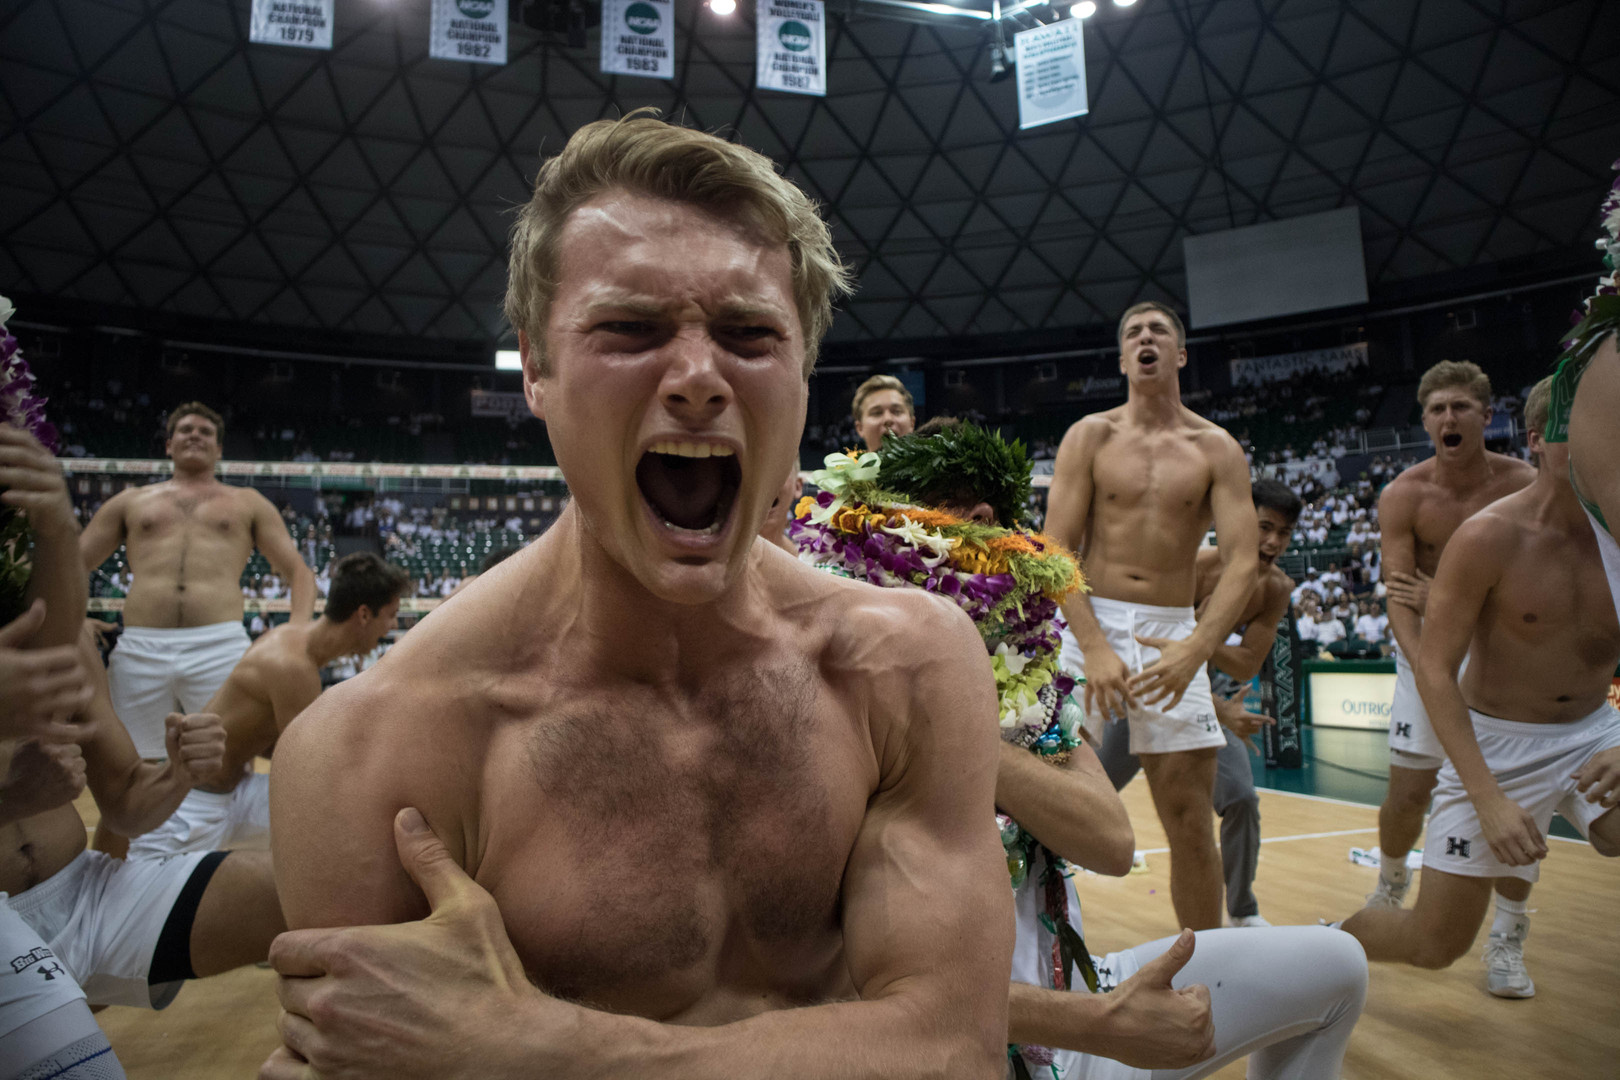 Hawaii volleyball outside hitter James Anastassiades screams during his performance at the senior night haka on April 7, 2019 at the Stan Sheriff Center.